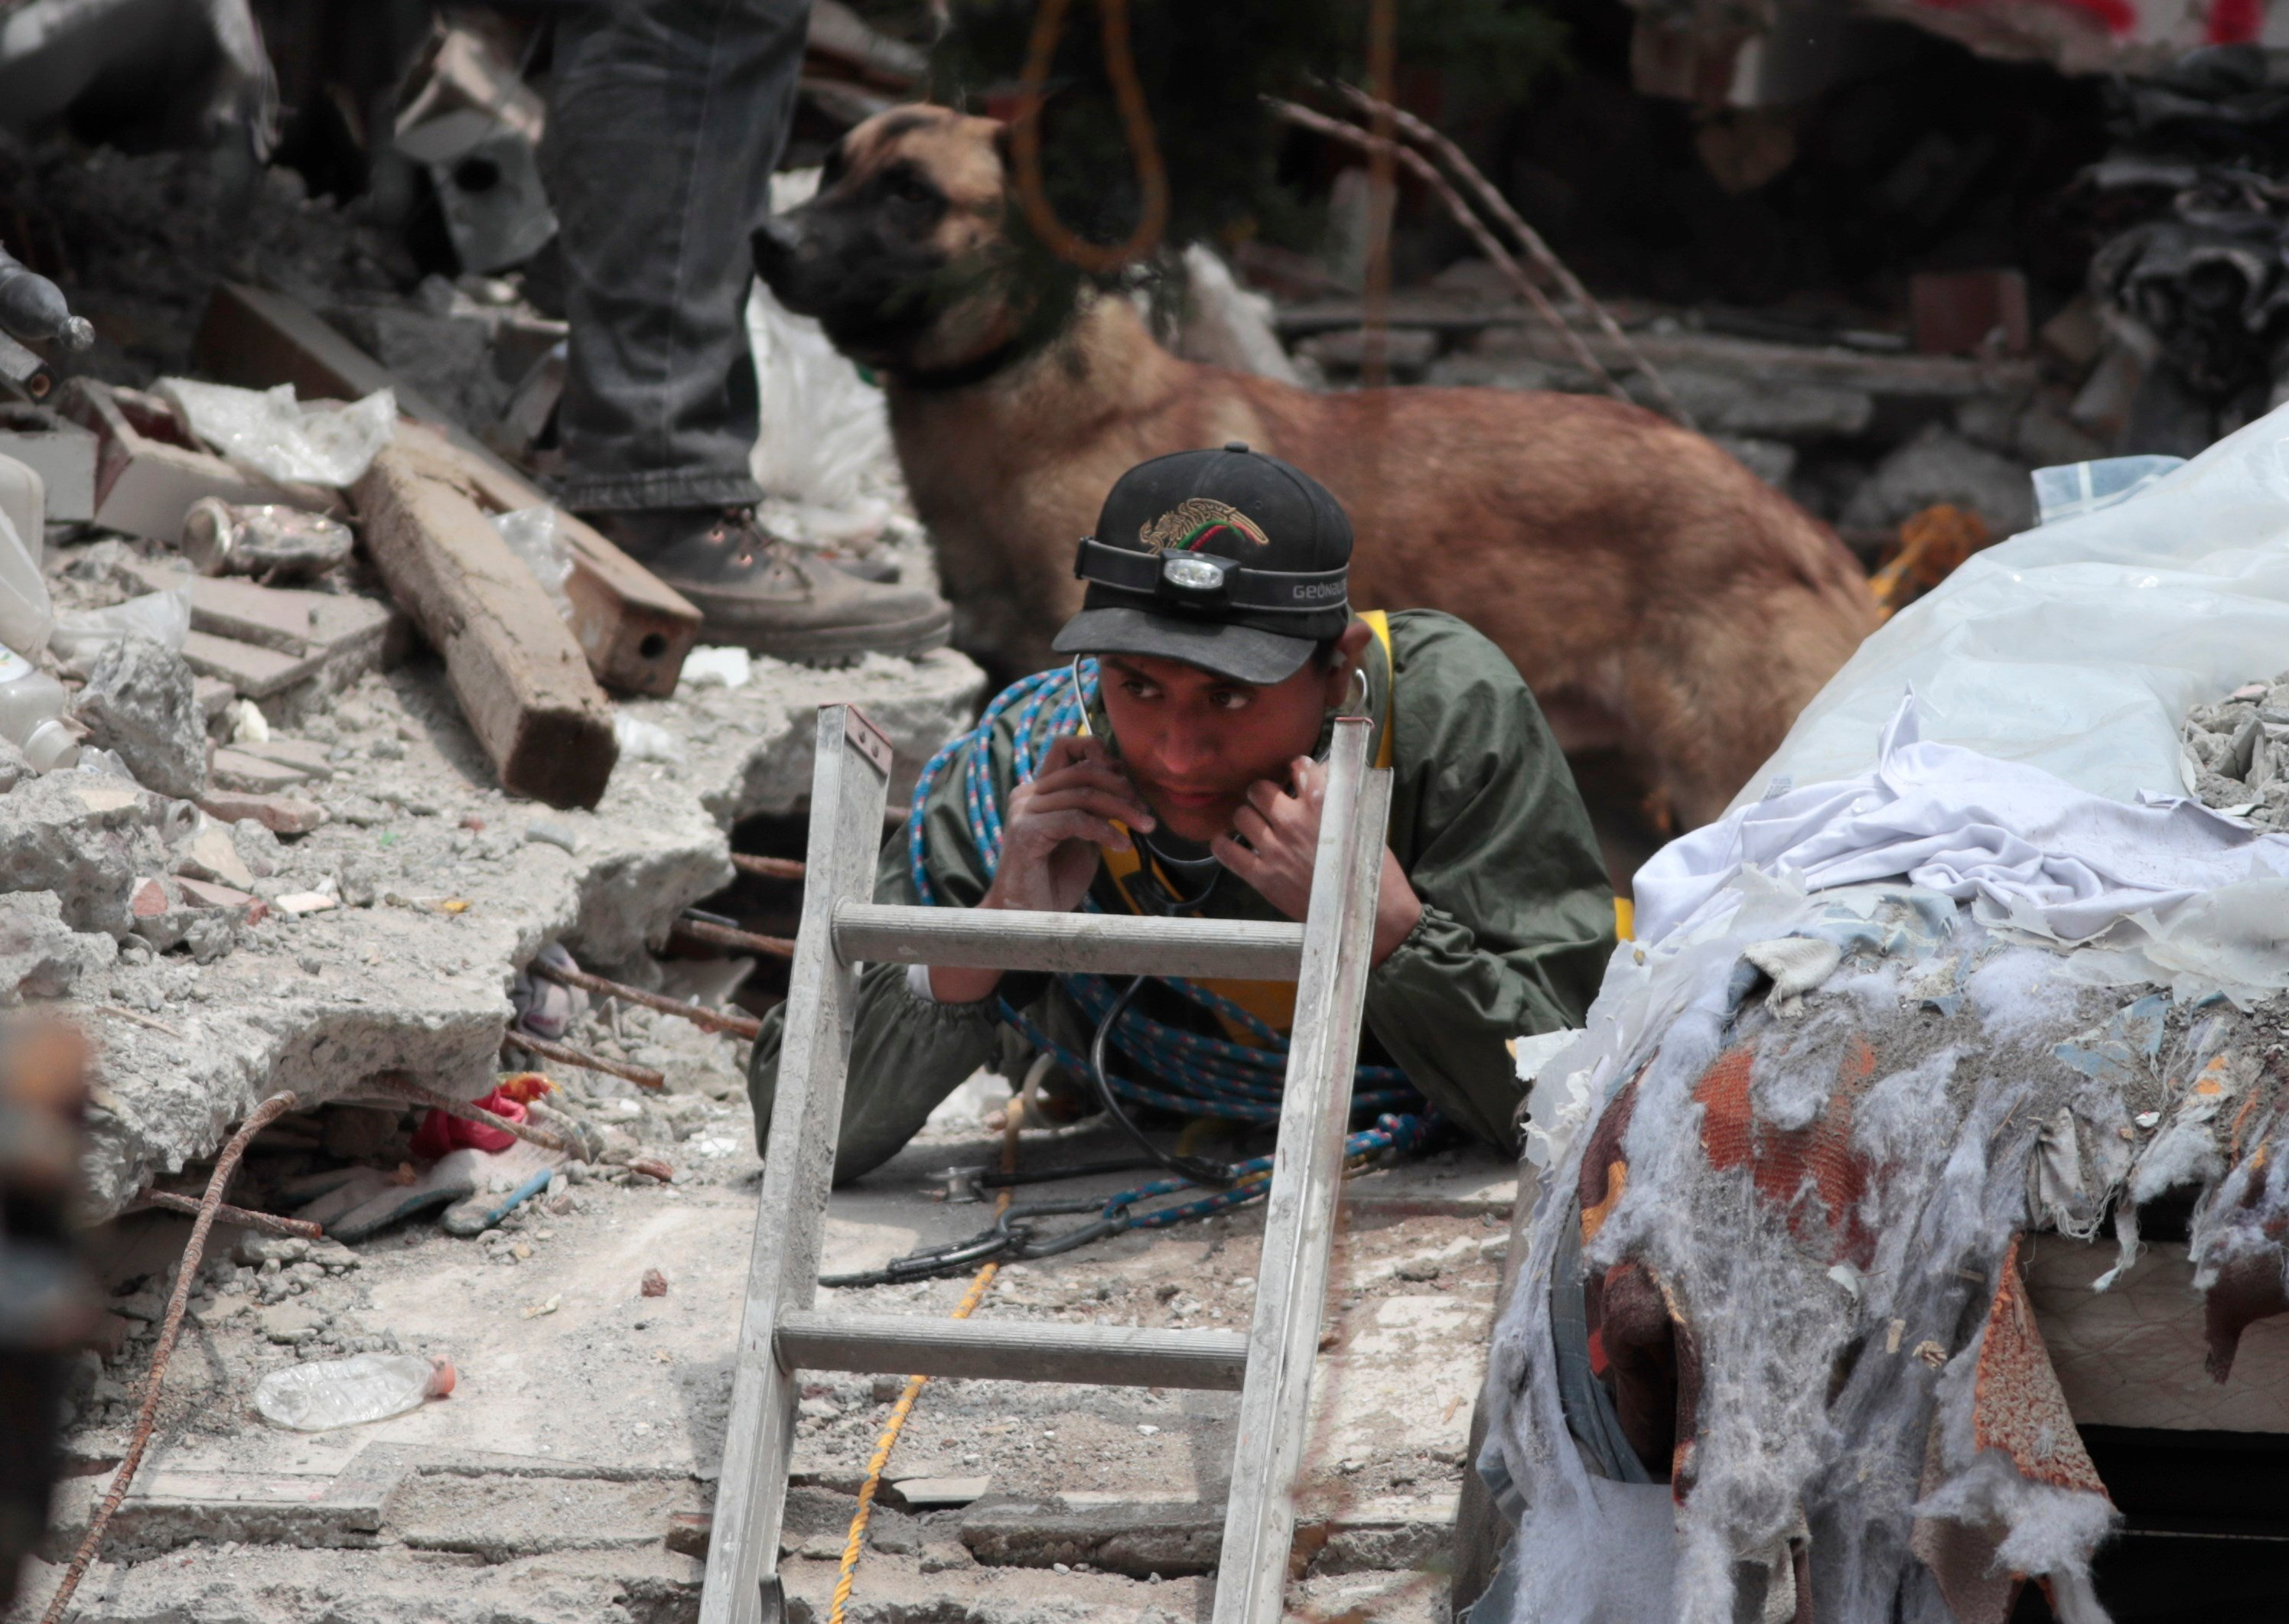 Mexico's office of the presidency says the death toll from a magnitude 7.1 earthquake has risen to 273, including 137 in the capital.